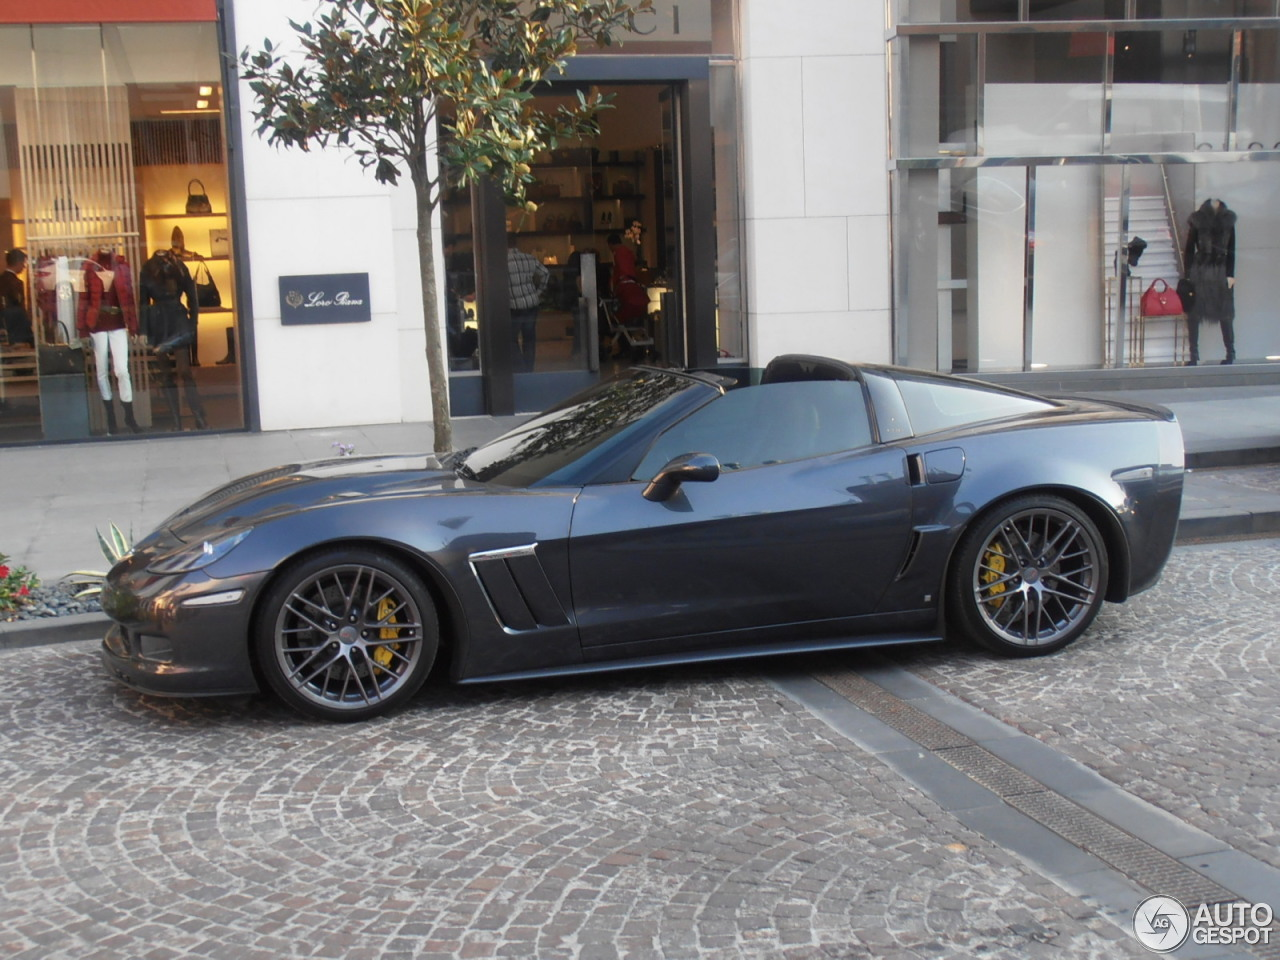 chevrolet corvette c6 grand sport convertible 14 october 2015 autogespot. Black Bedroom Furniture Sets. Home Design Ideas